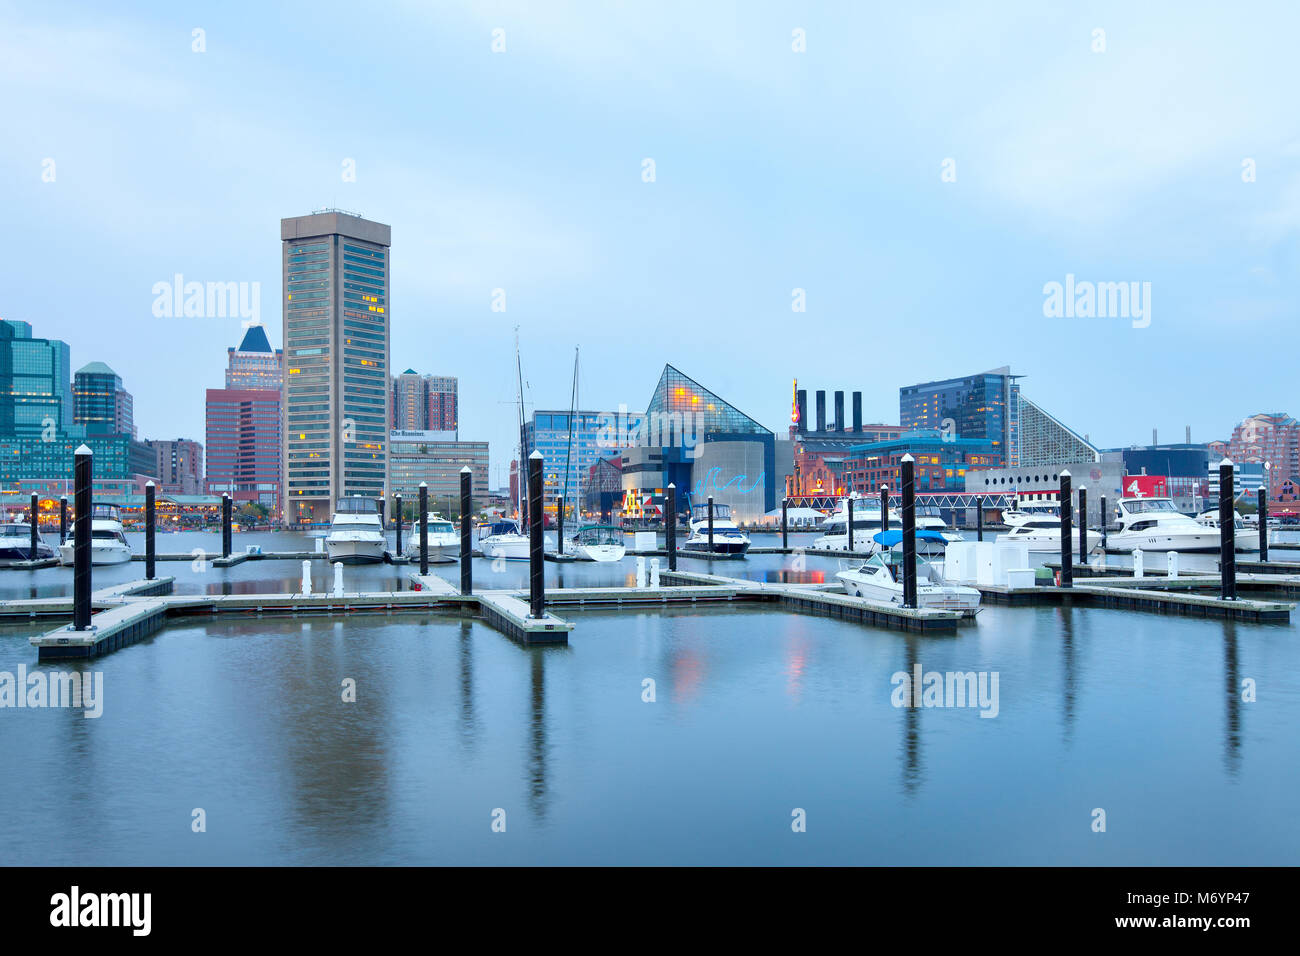 Baltimore, Maryland, United States – Downtown city skyline at the Inner Harbor and Baltimore National Aquarium. - Stock Image